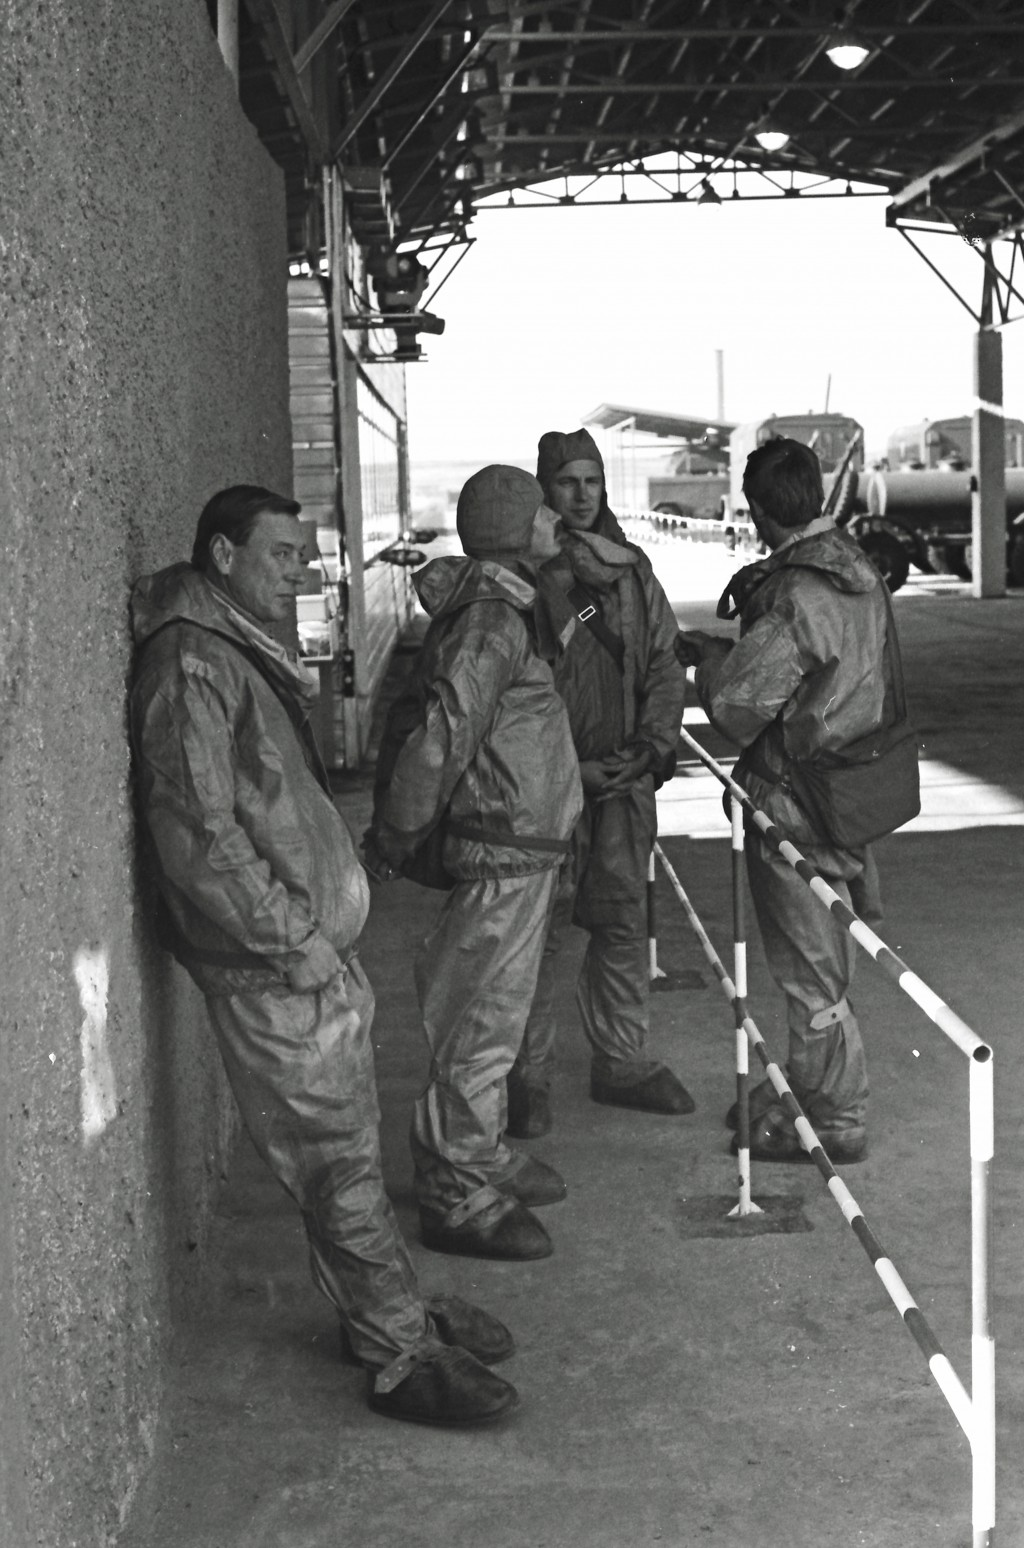 In this photo taken on Oct. 4, 1987, Soviet troops in protective gear take a break during a visit by Western diplomats and journalists to a chemical w...